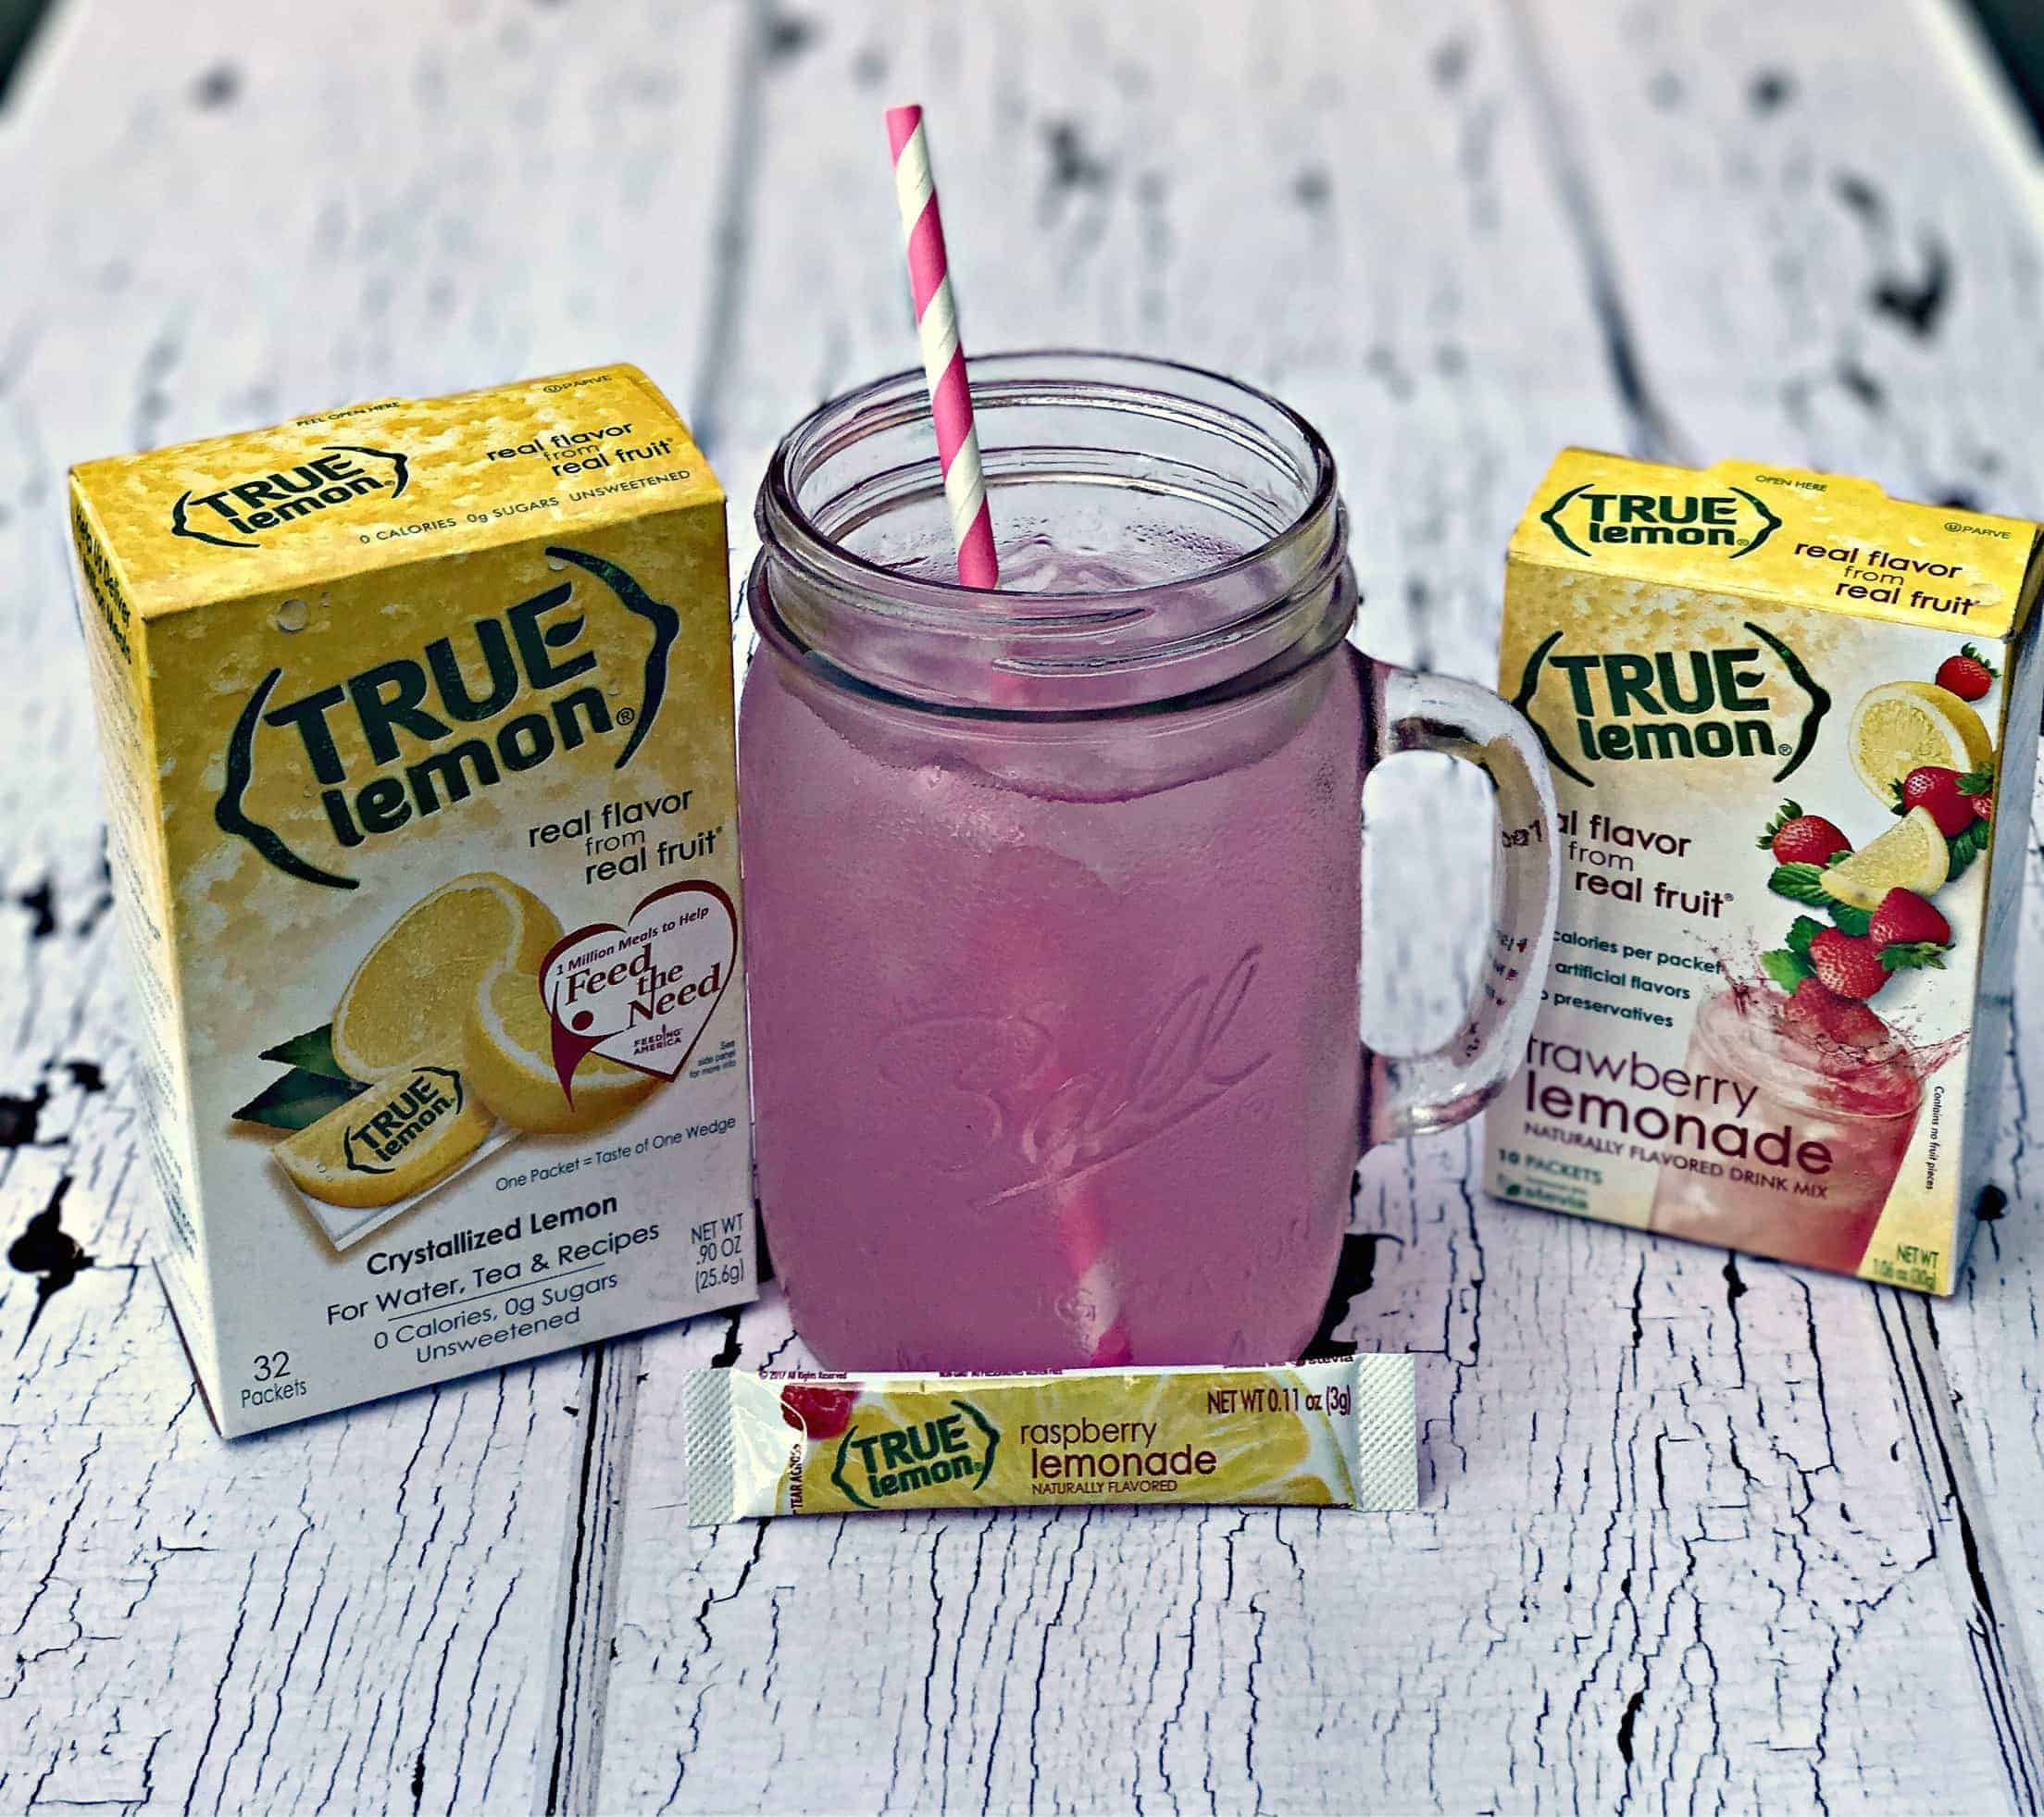 2 boxes of true lemon naturally flavored drink mix, a mason jar with raspberry lemonade and a pink and white straw